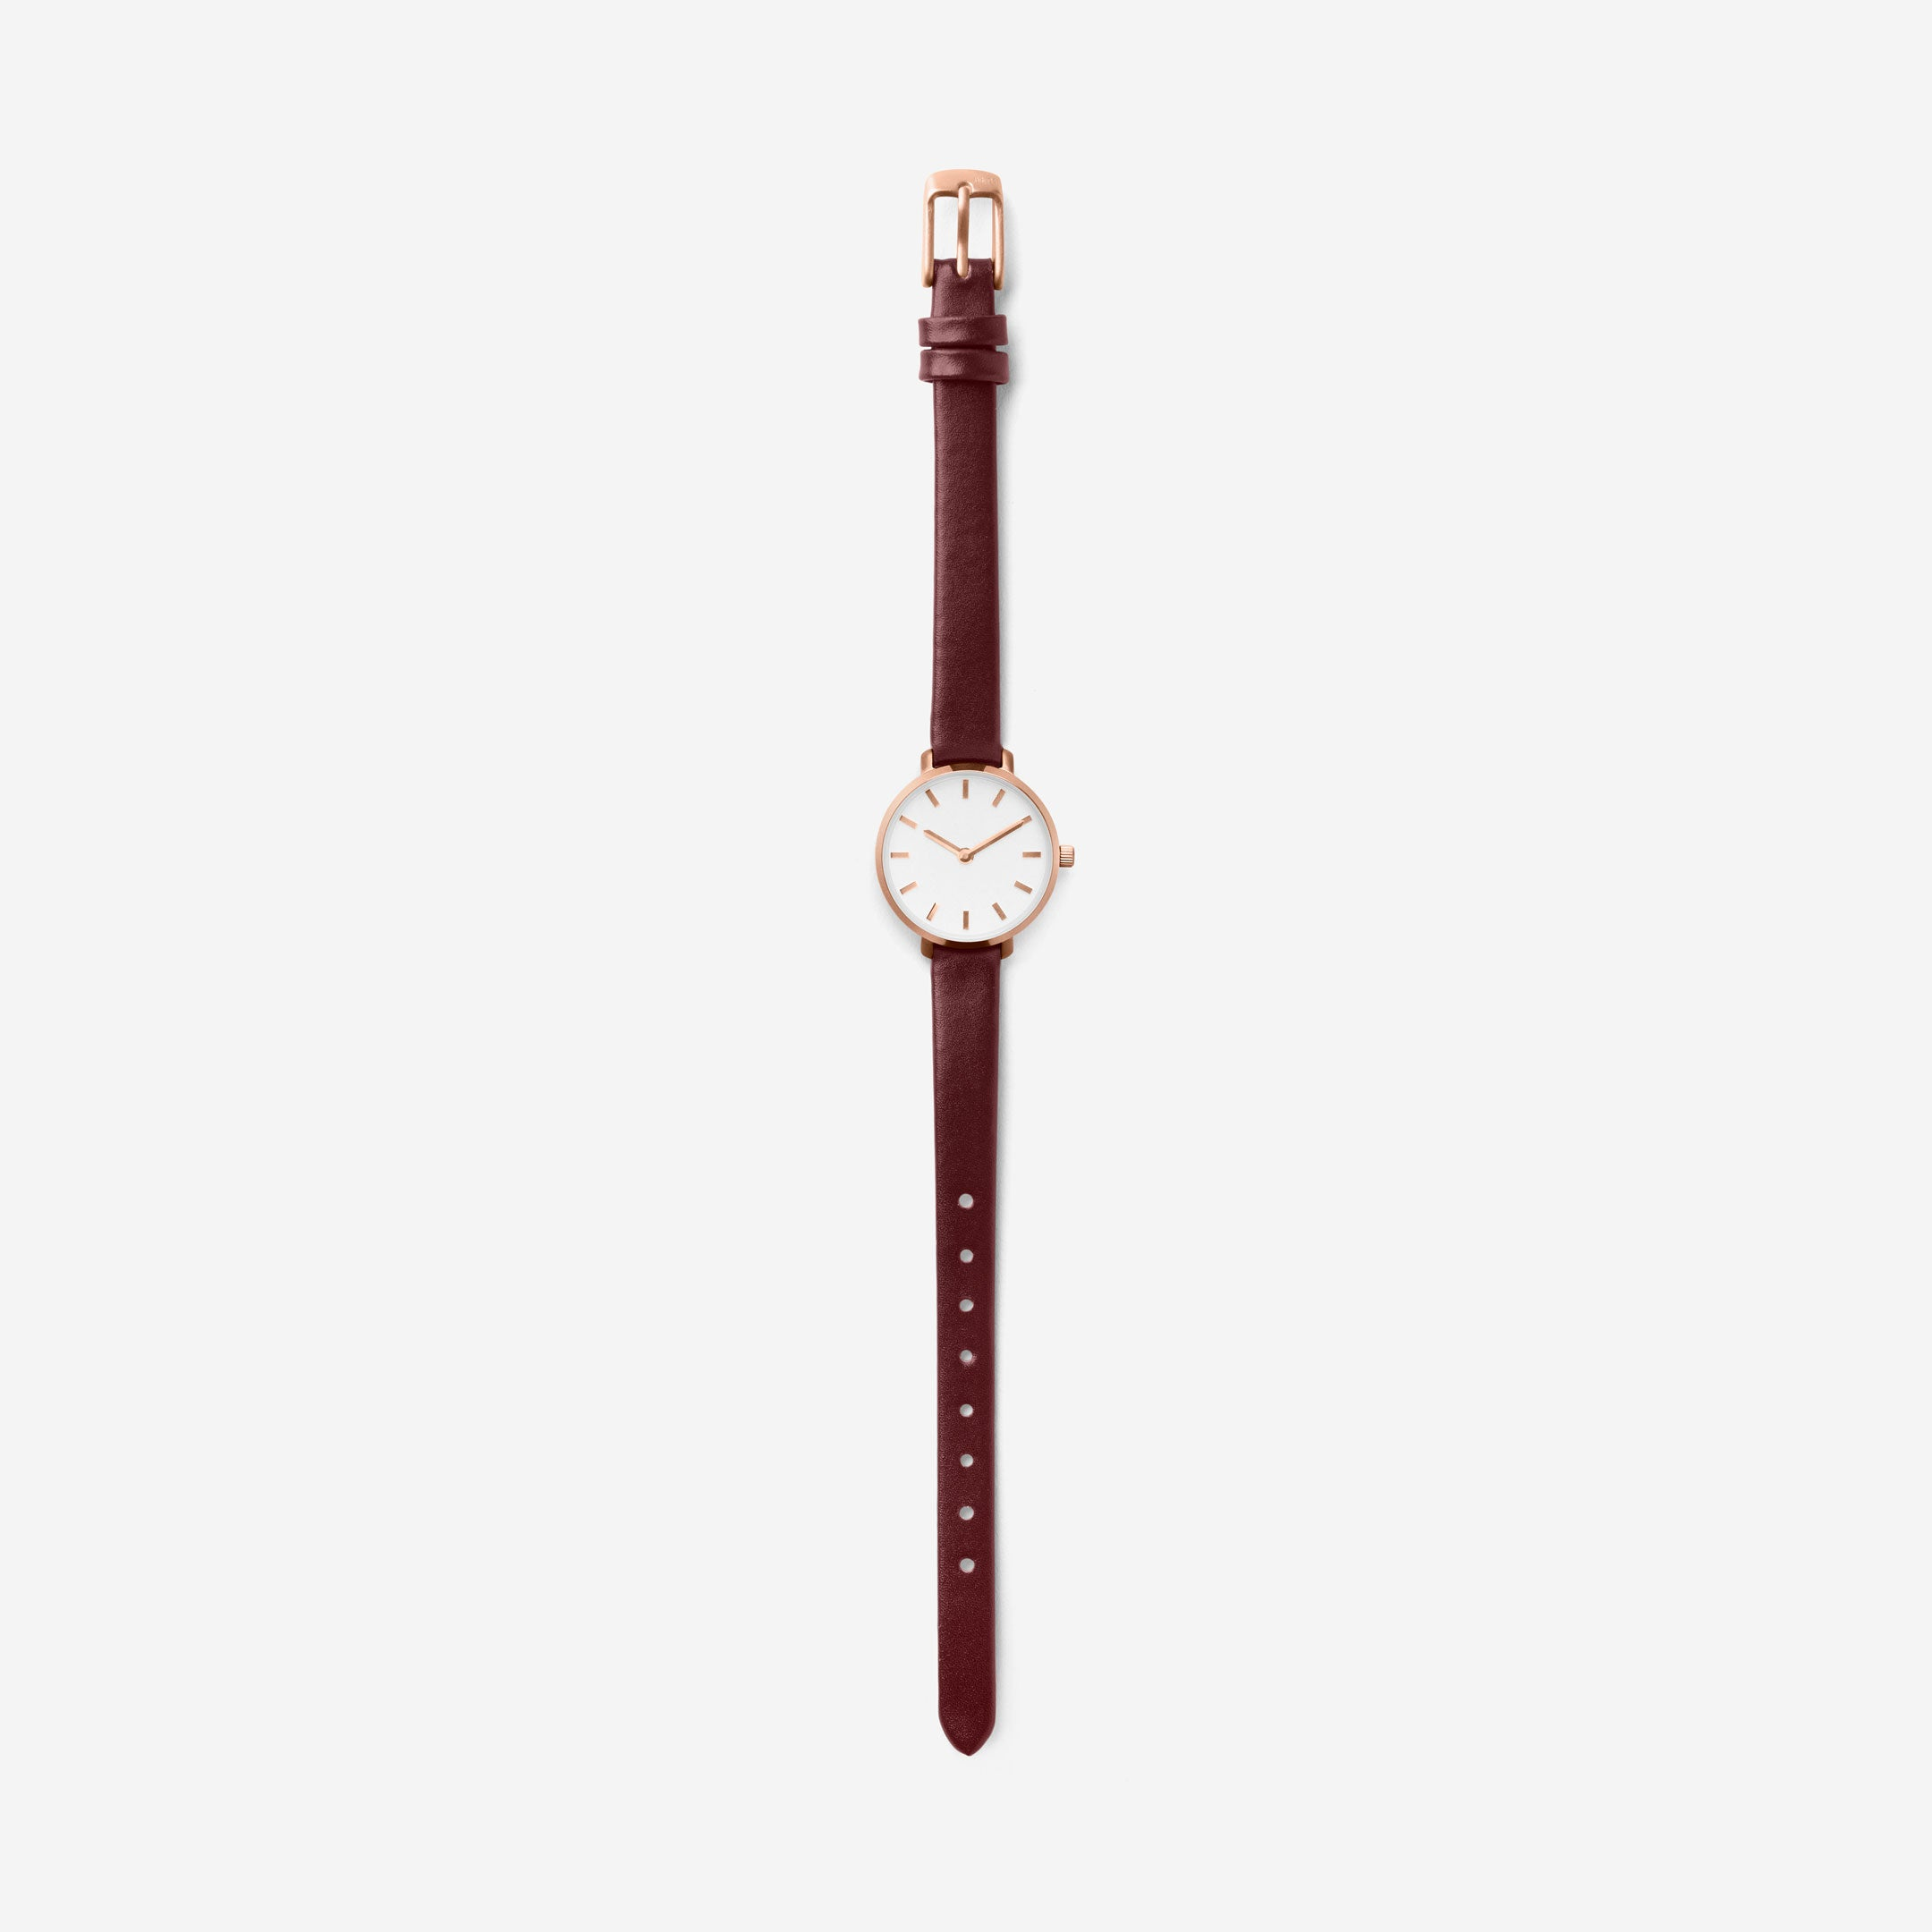 //cdn.shopify.com/s/files/1/0879/6650/products/breda-beverly-1730e-rosegold-maroon-leather-watch-long_1024x1024.jpg?v=1522789968